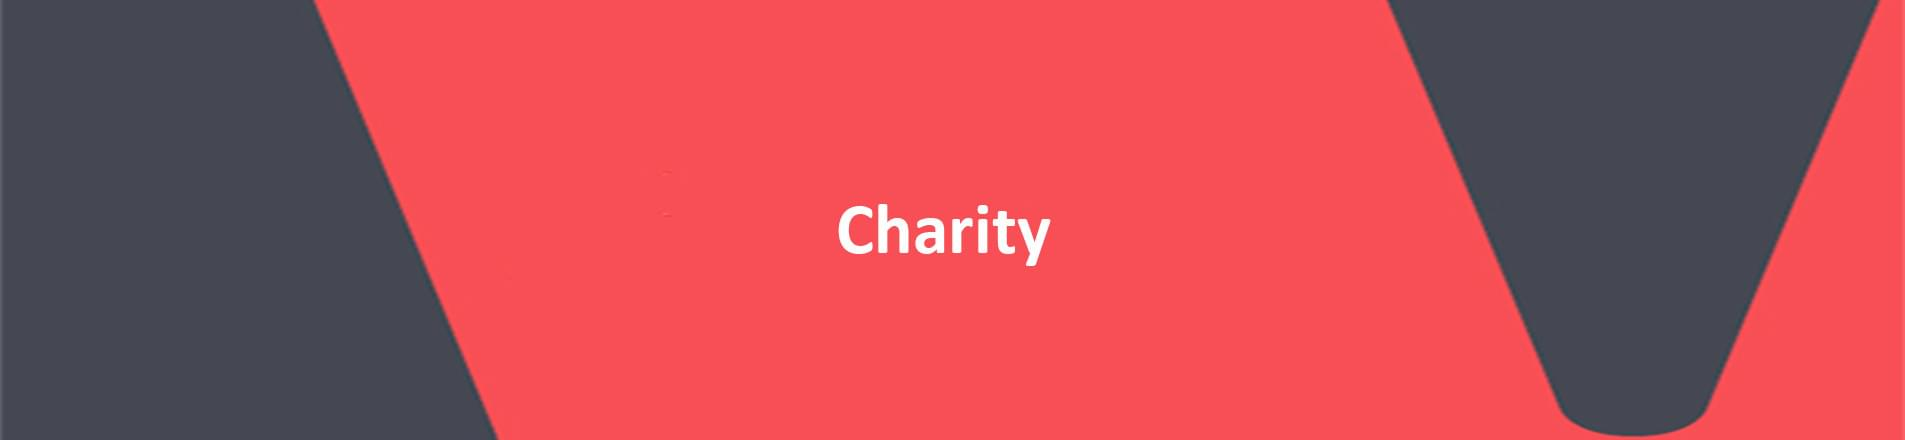 "Image VERCIDA banner.  Red background with the word ""charity"" in white letters."